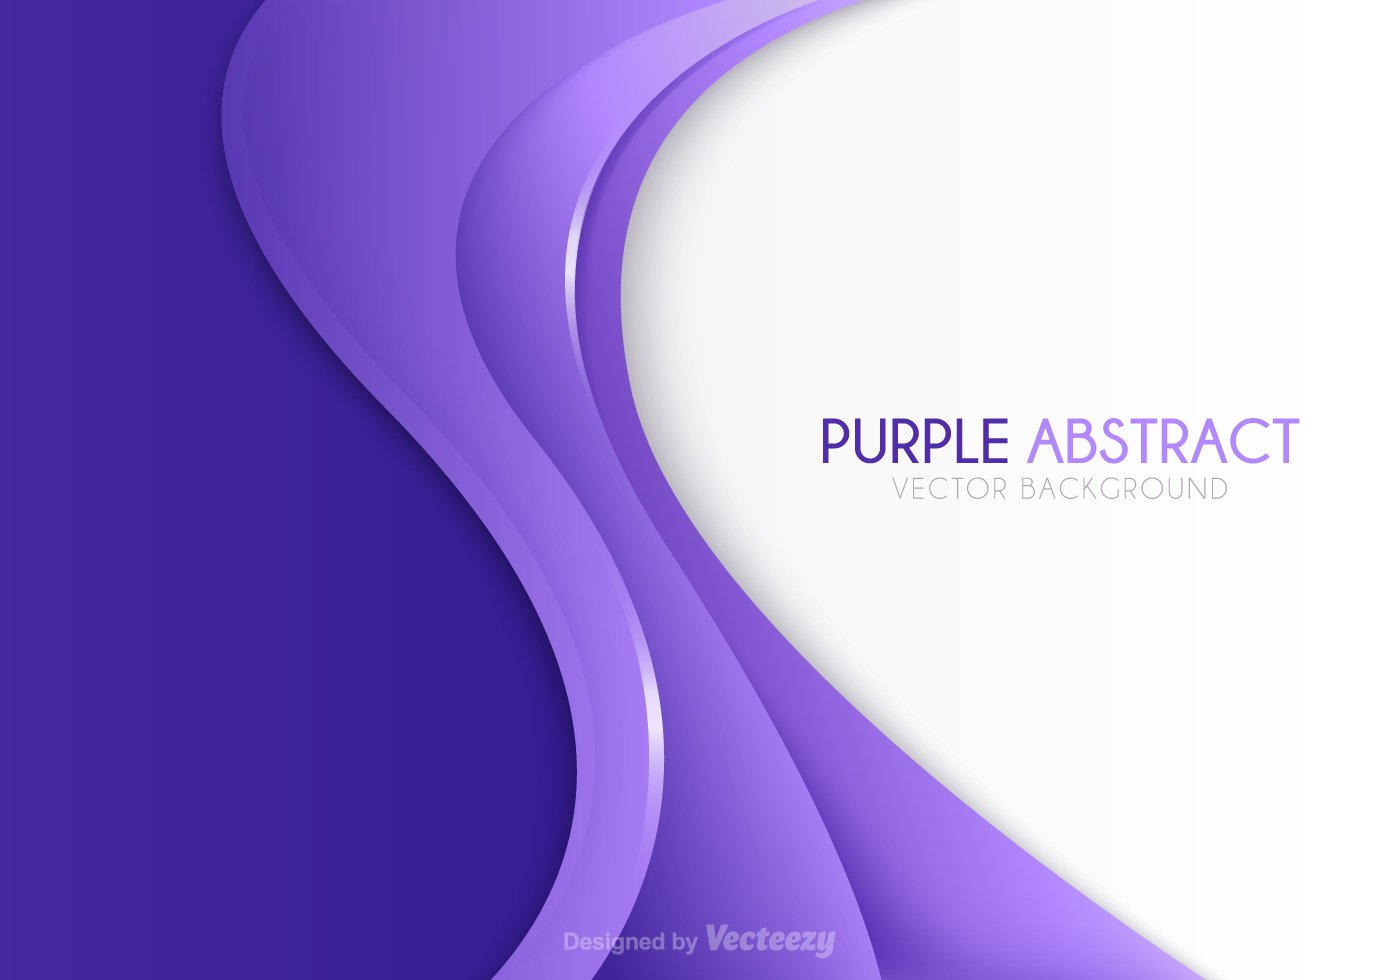 Purple Abstract Vector Free